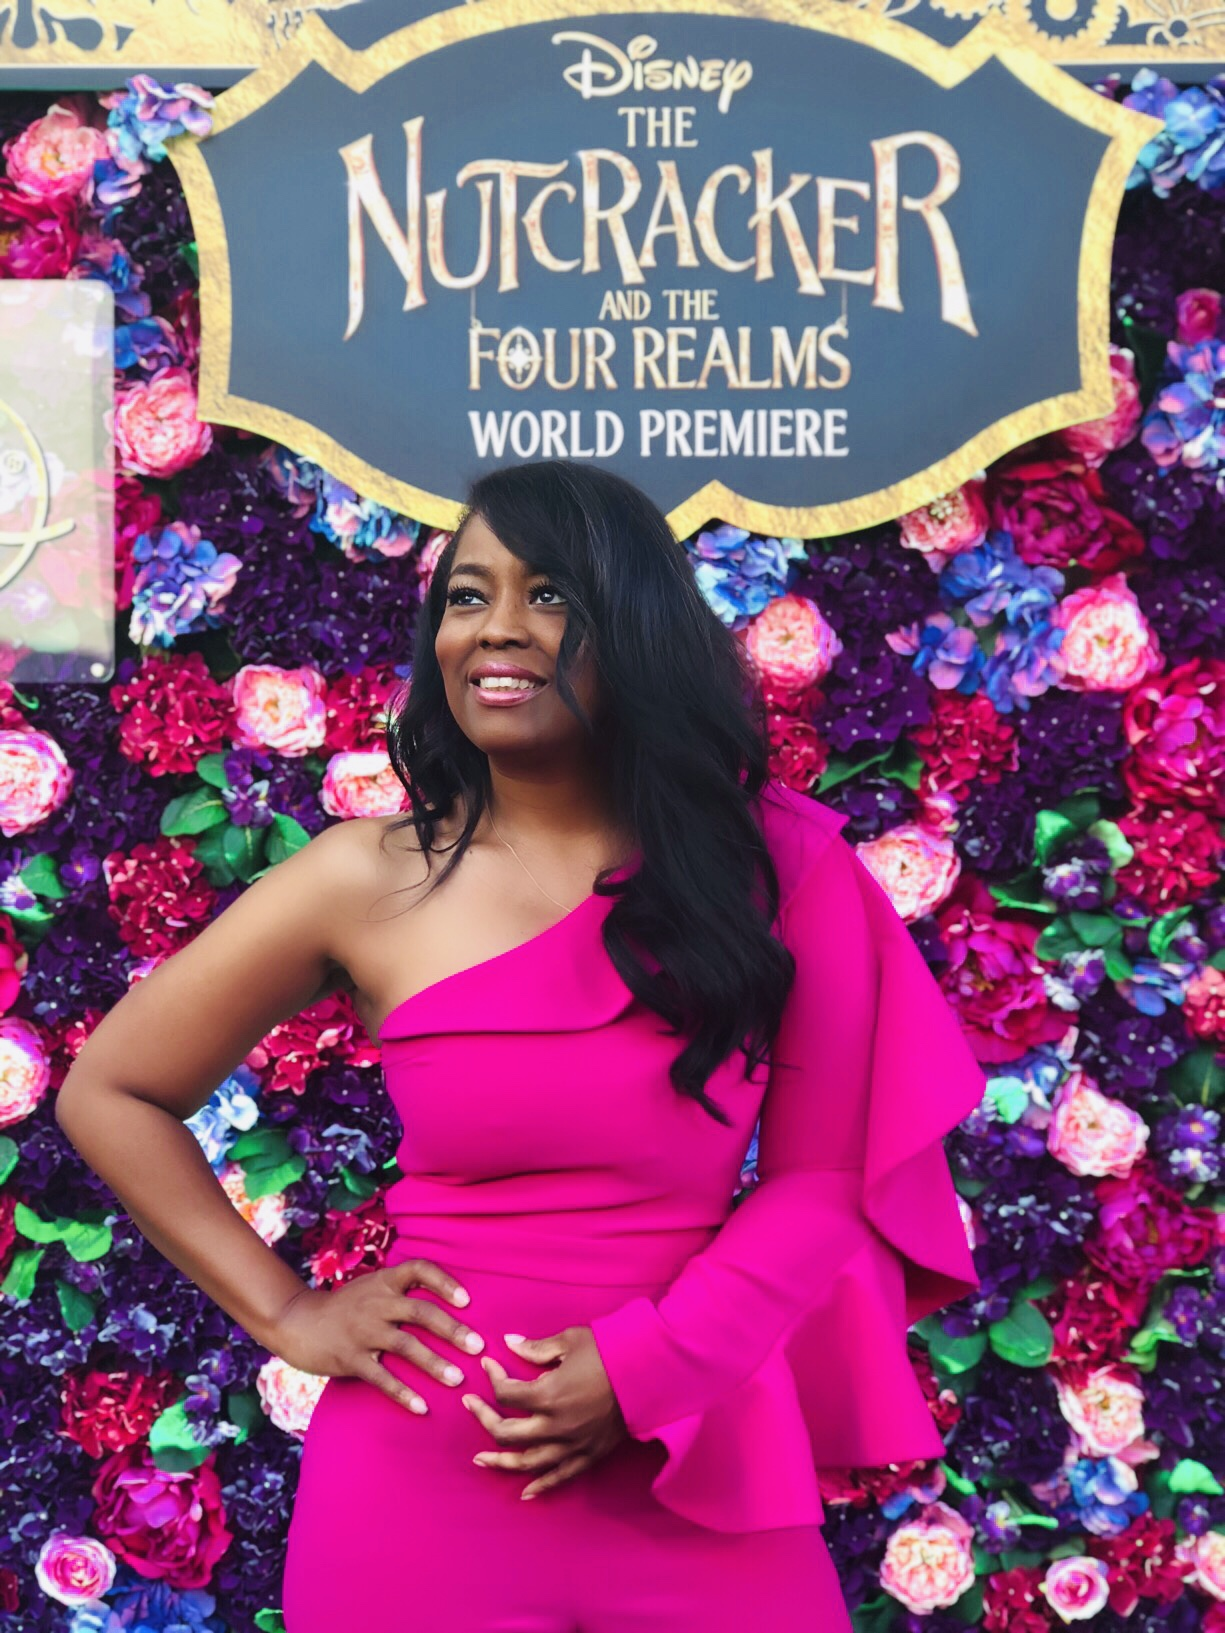 My Experience: The Nutcracker And The Four Realms Red Carpet World Premiere